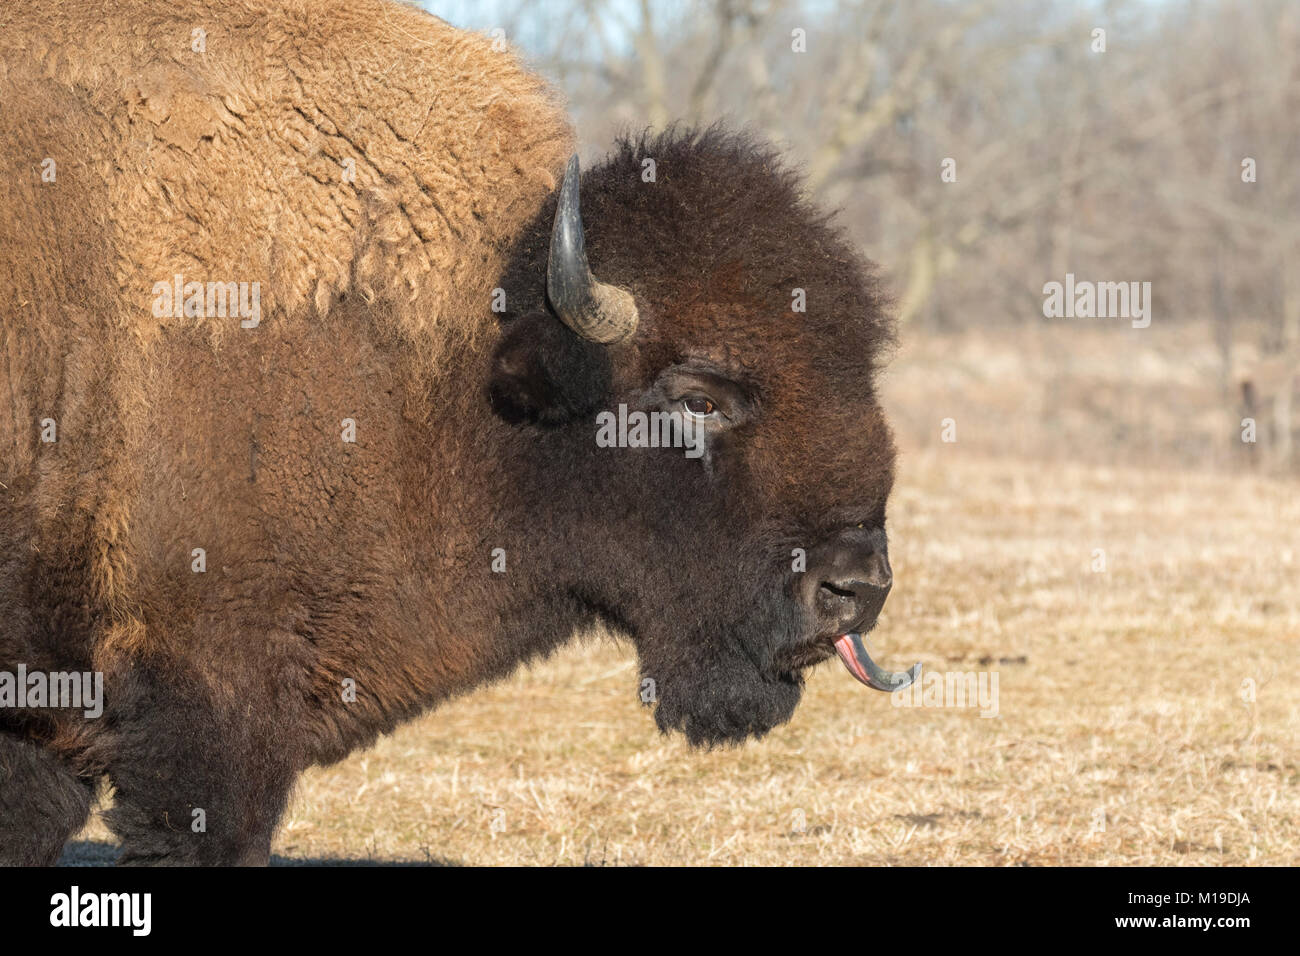 Amerikanische Bison (Bison bison) an Neal Smith Wildlife Refuge Stockbild